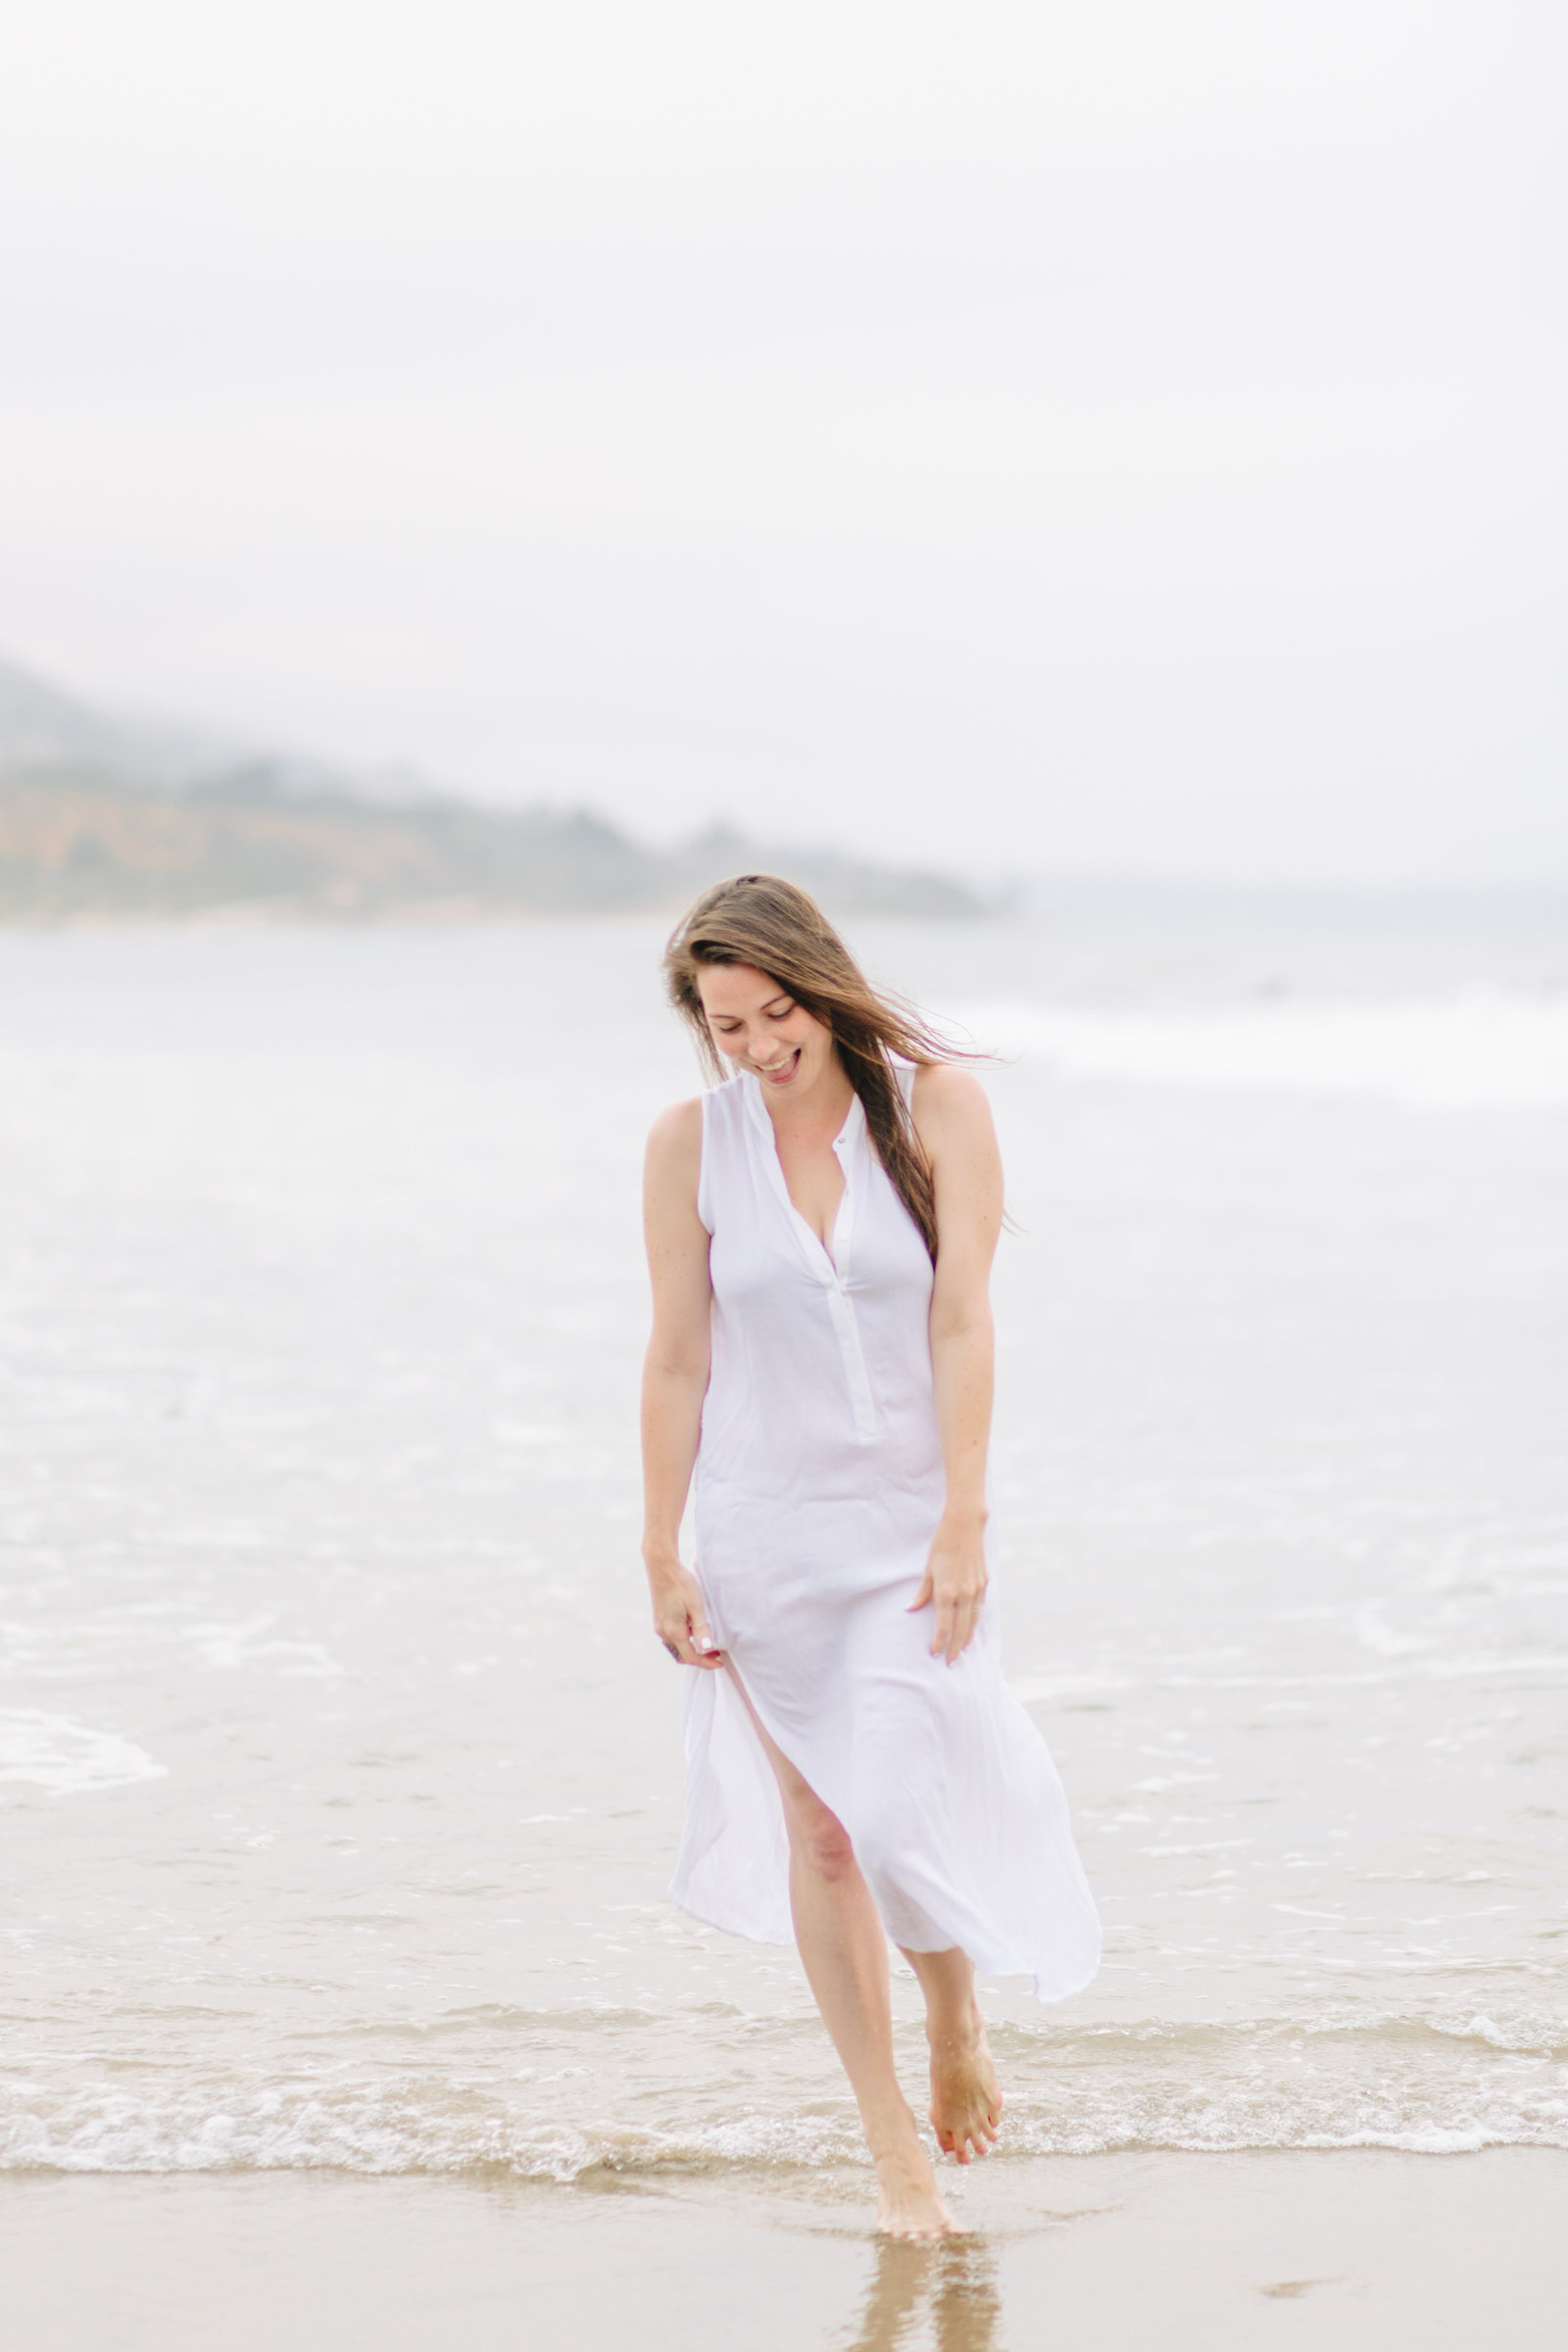 El Leo Carrillo Beach Malibu Angelika Johns Photography-3329